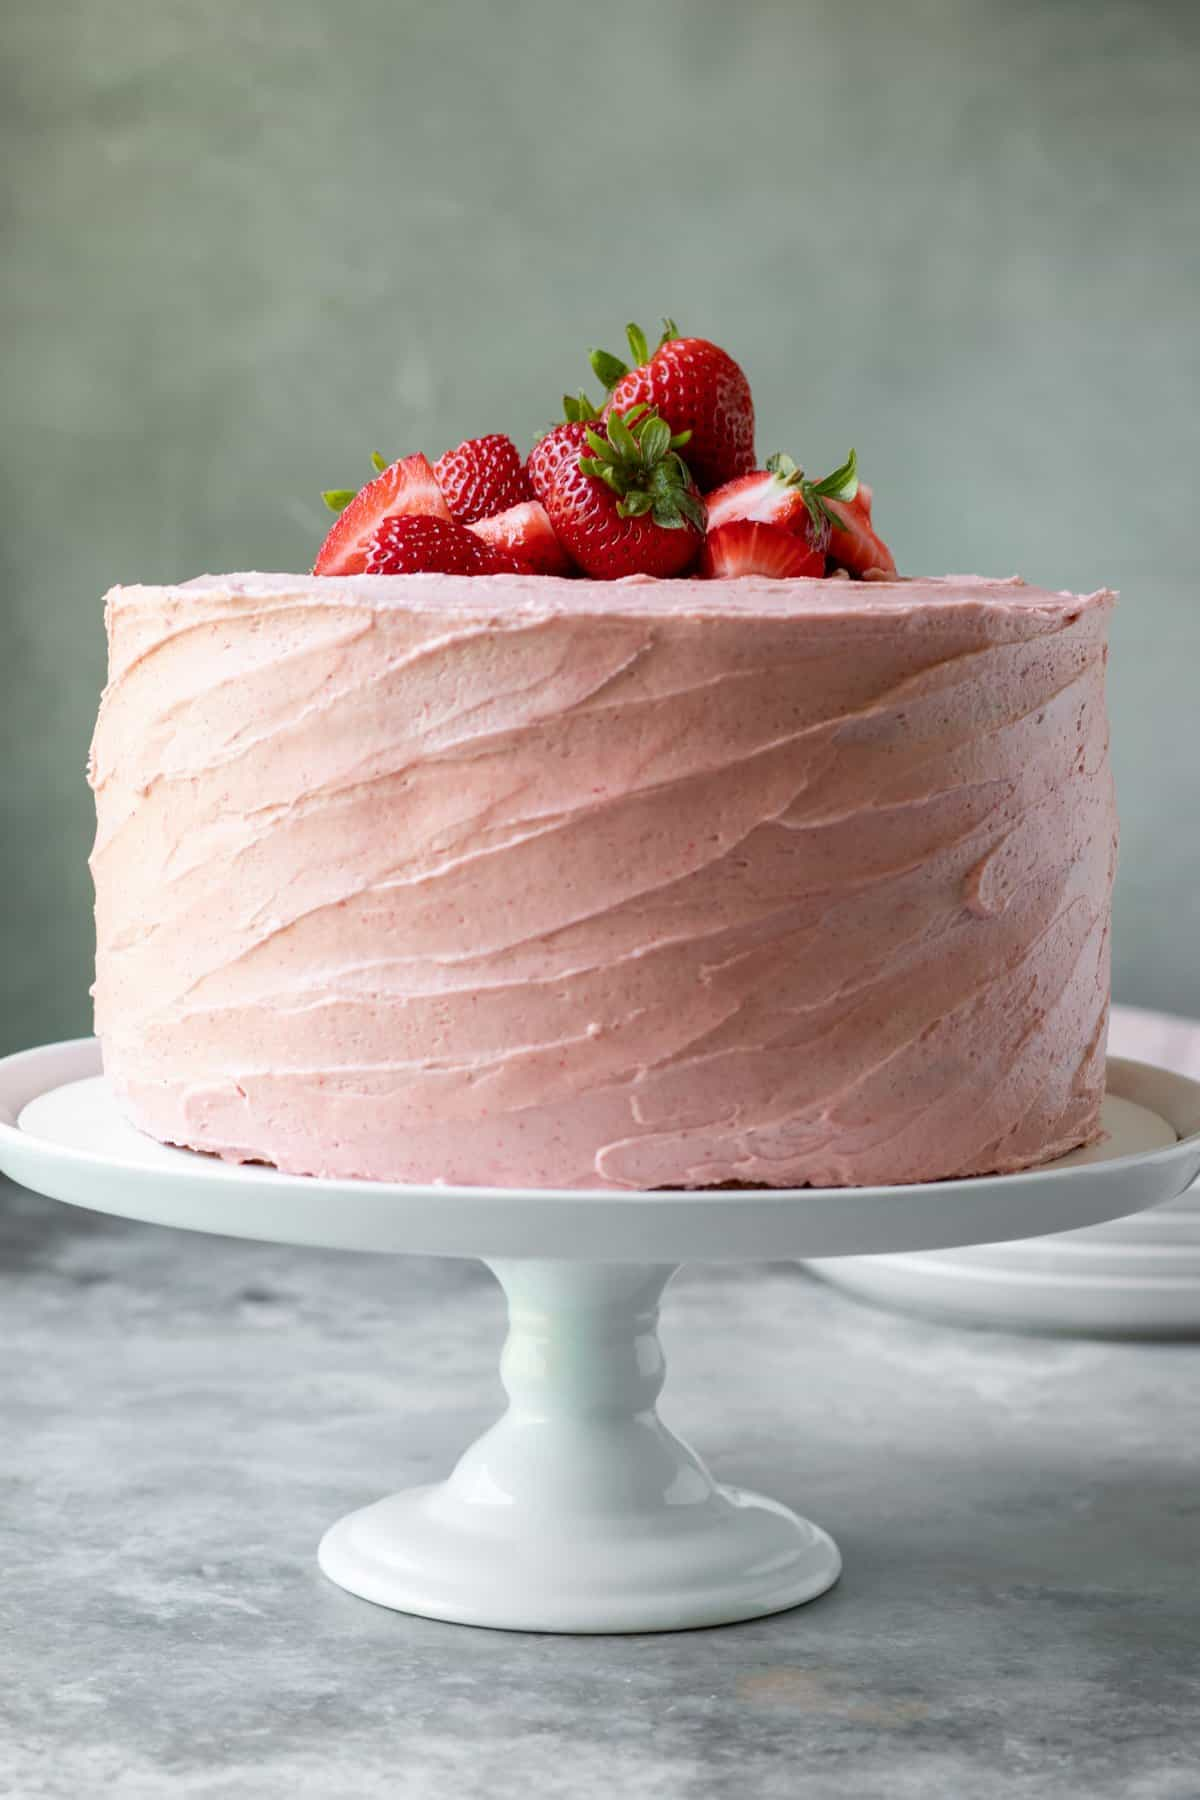 3-layer frosted cake on a white cake stand.